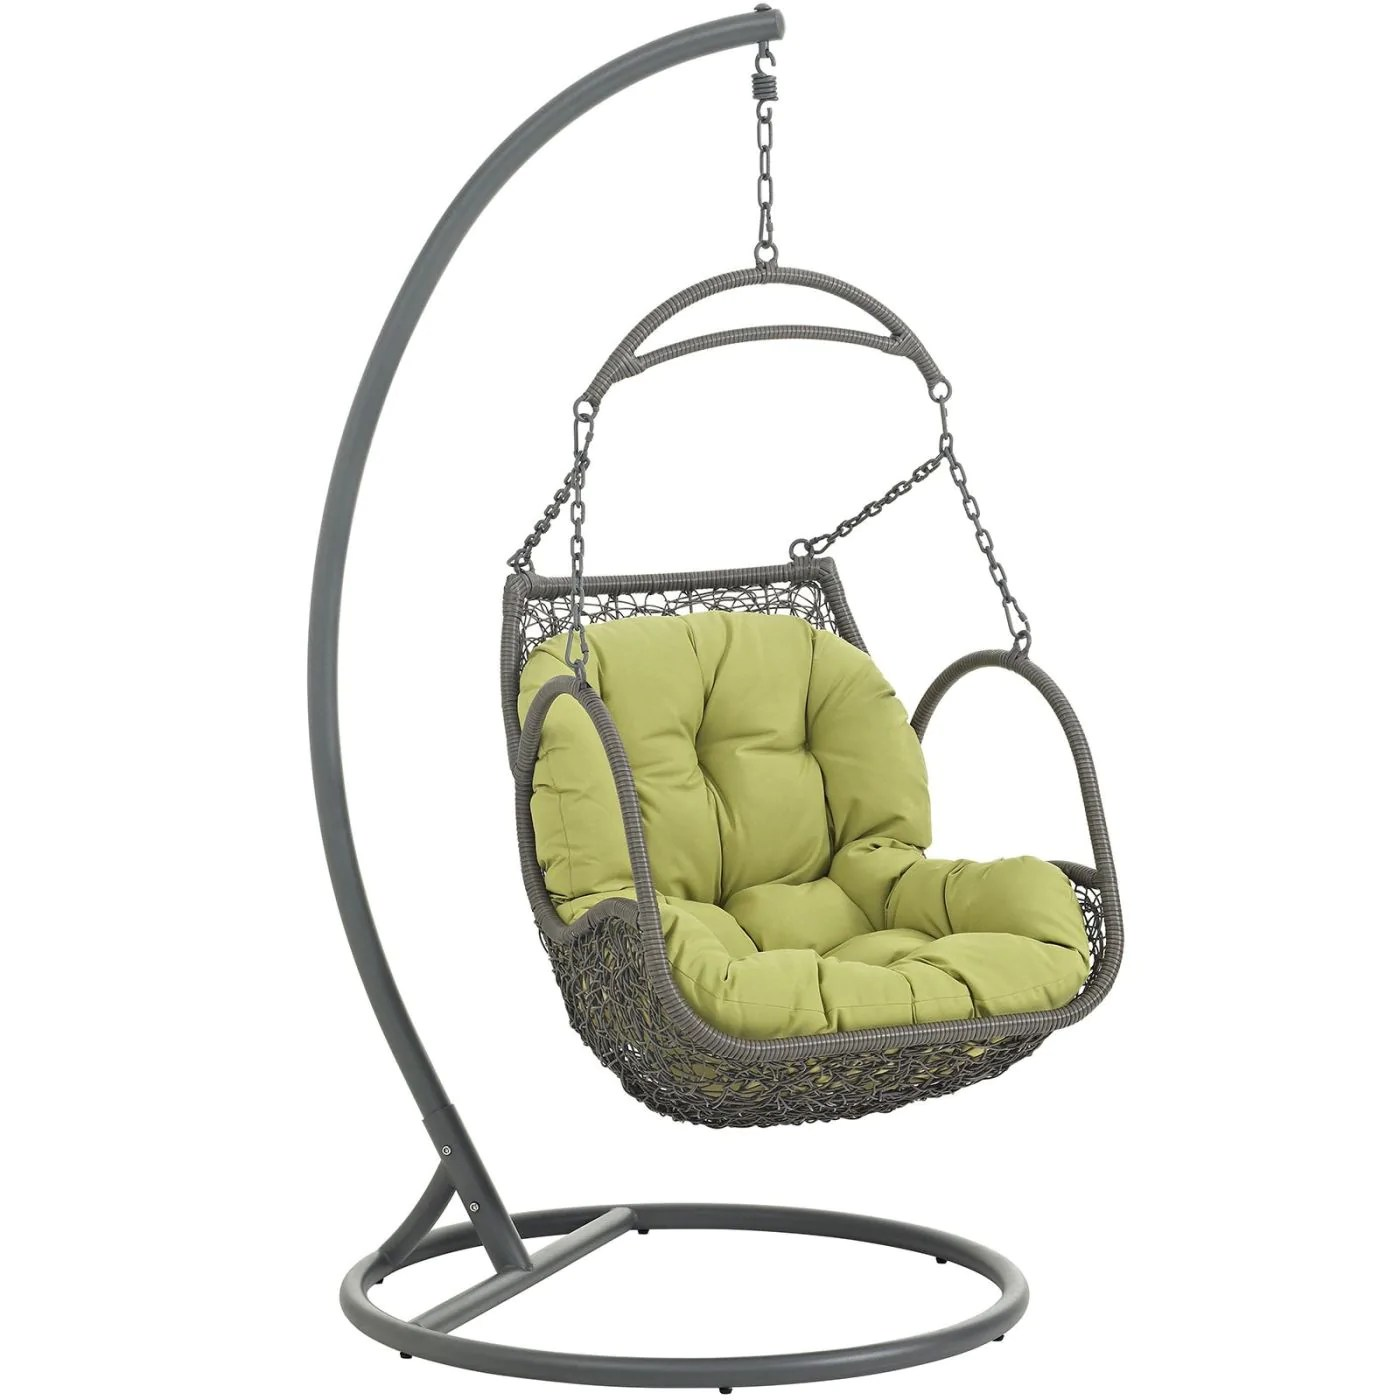 Hanging Patio Chair Buy Modway Eei 2279 Per Set Arbor Outdoor Hanging Patio Wood Swing Chair At Contemporary Furniture Warehouse